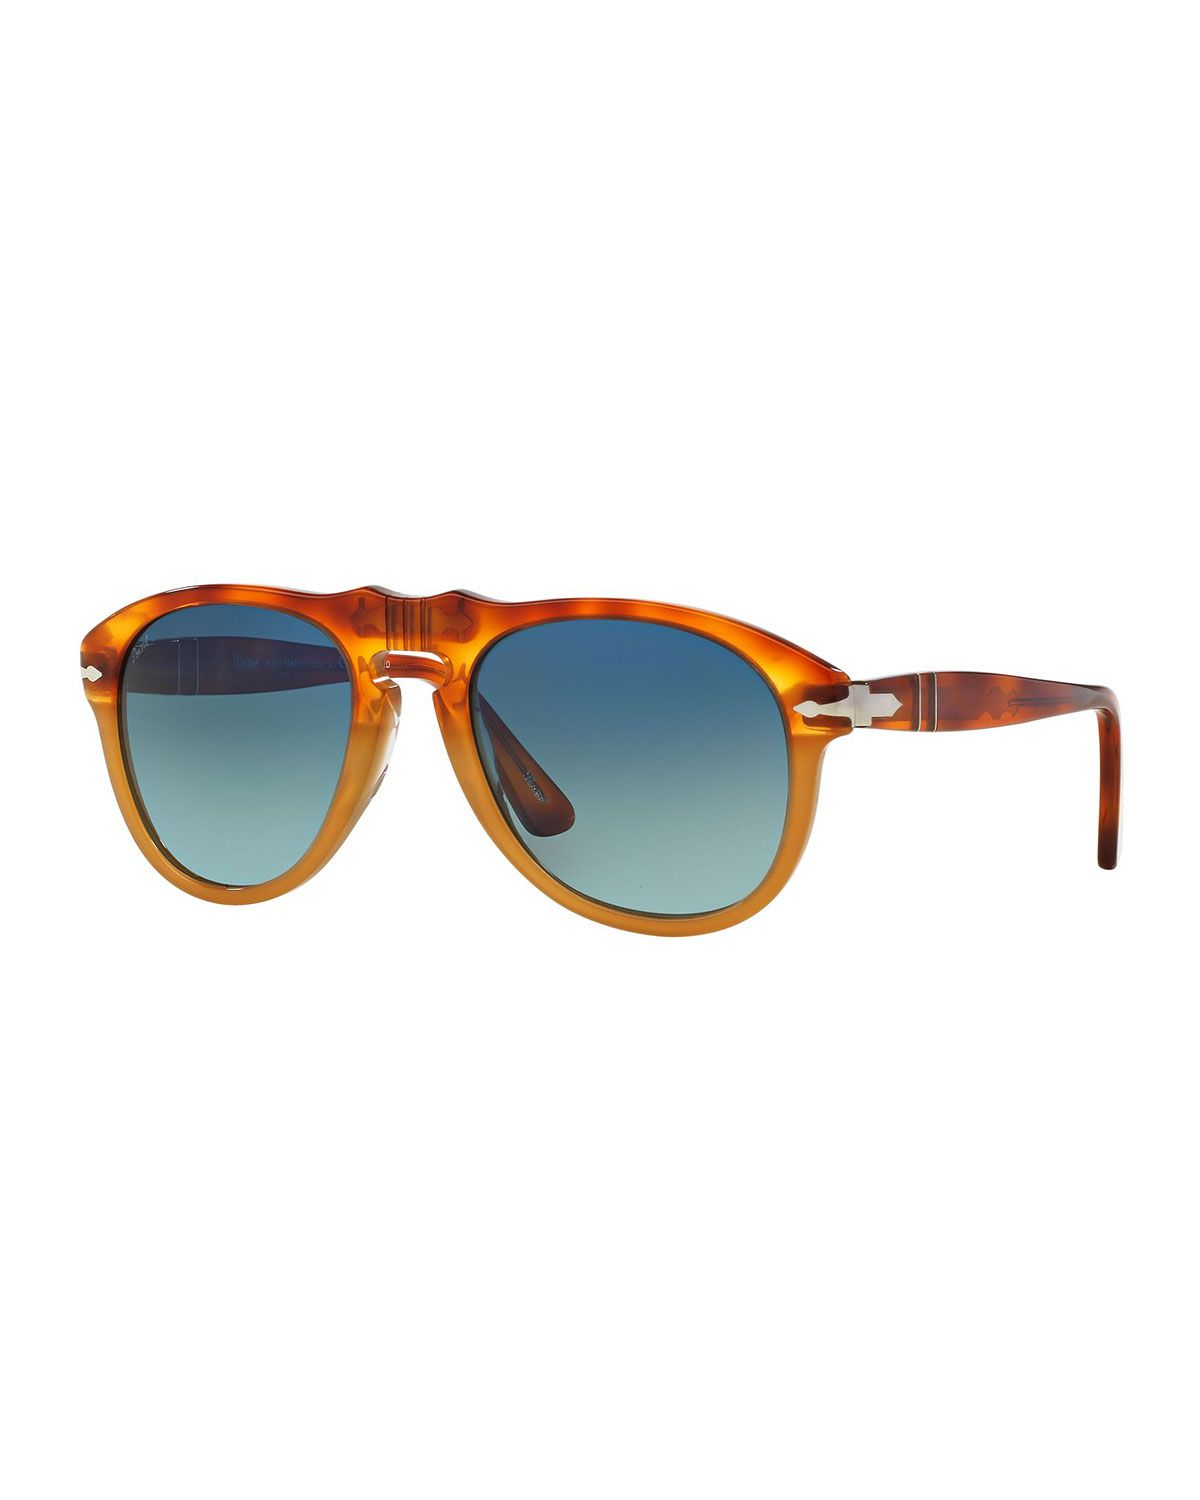 d6a9b18bee602 PERSOL 649-SERIES ACETATE SUNGLASSES